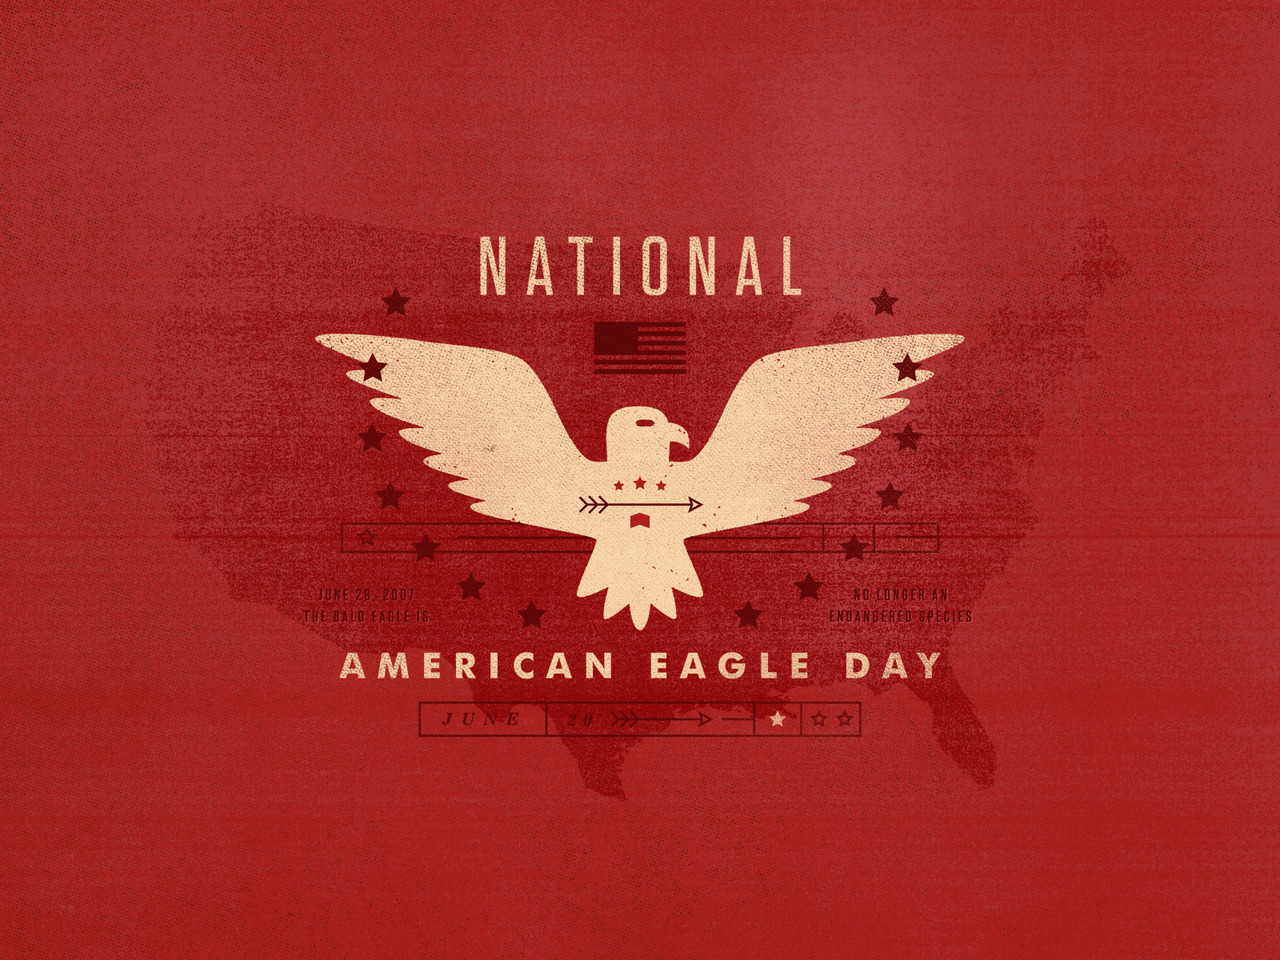 Identity: National American Eagle Day